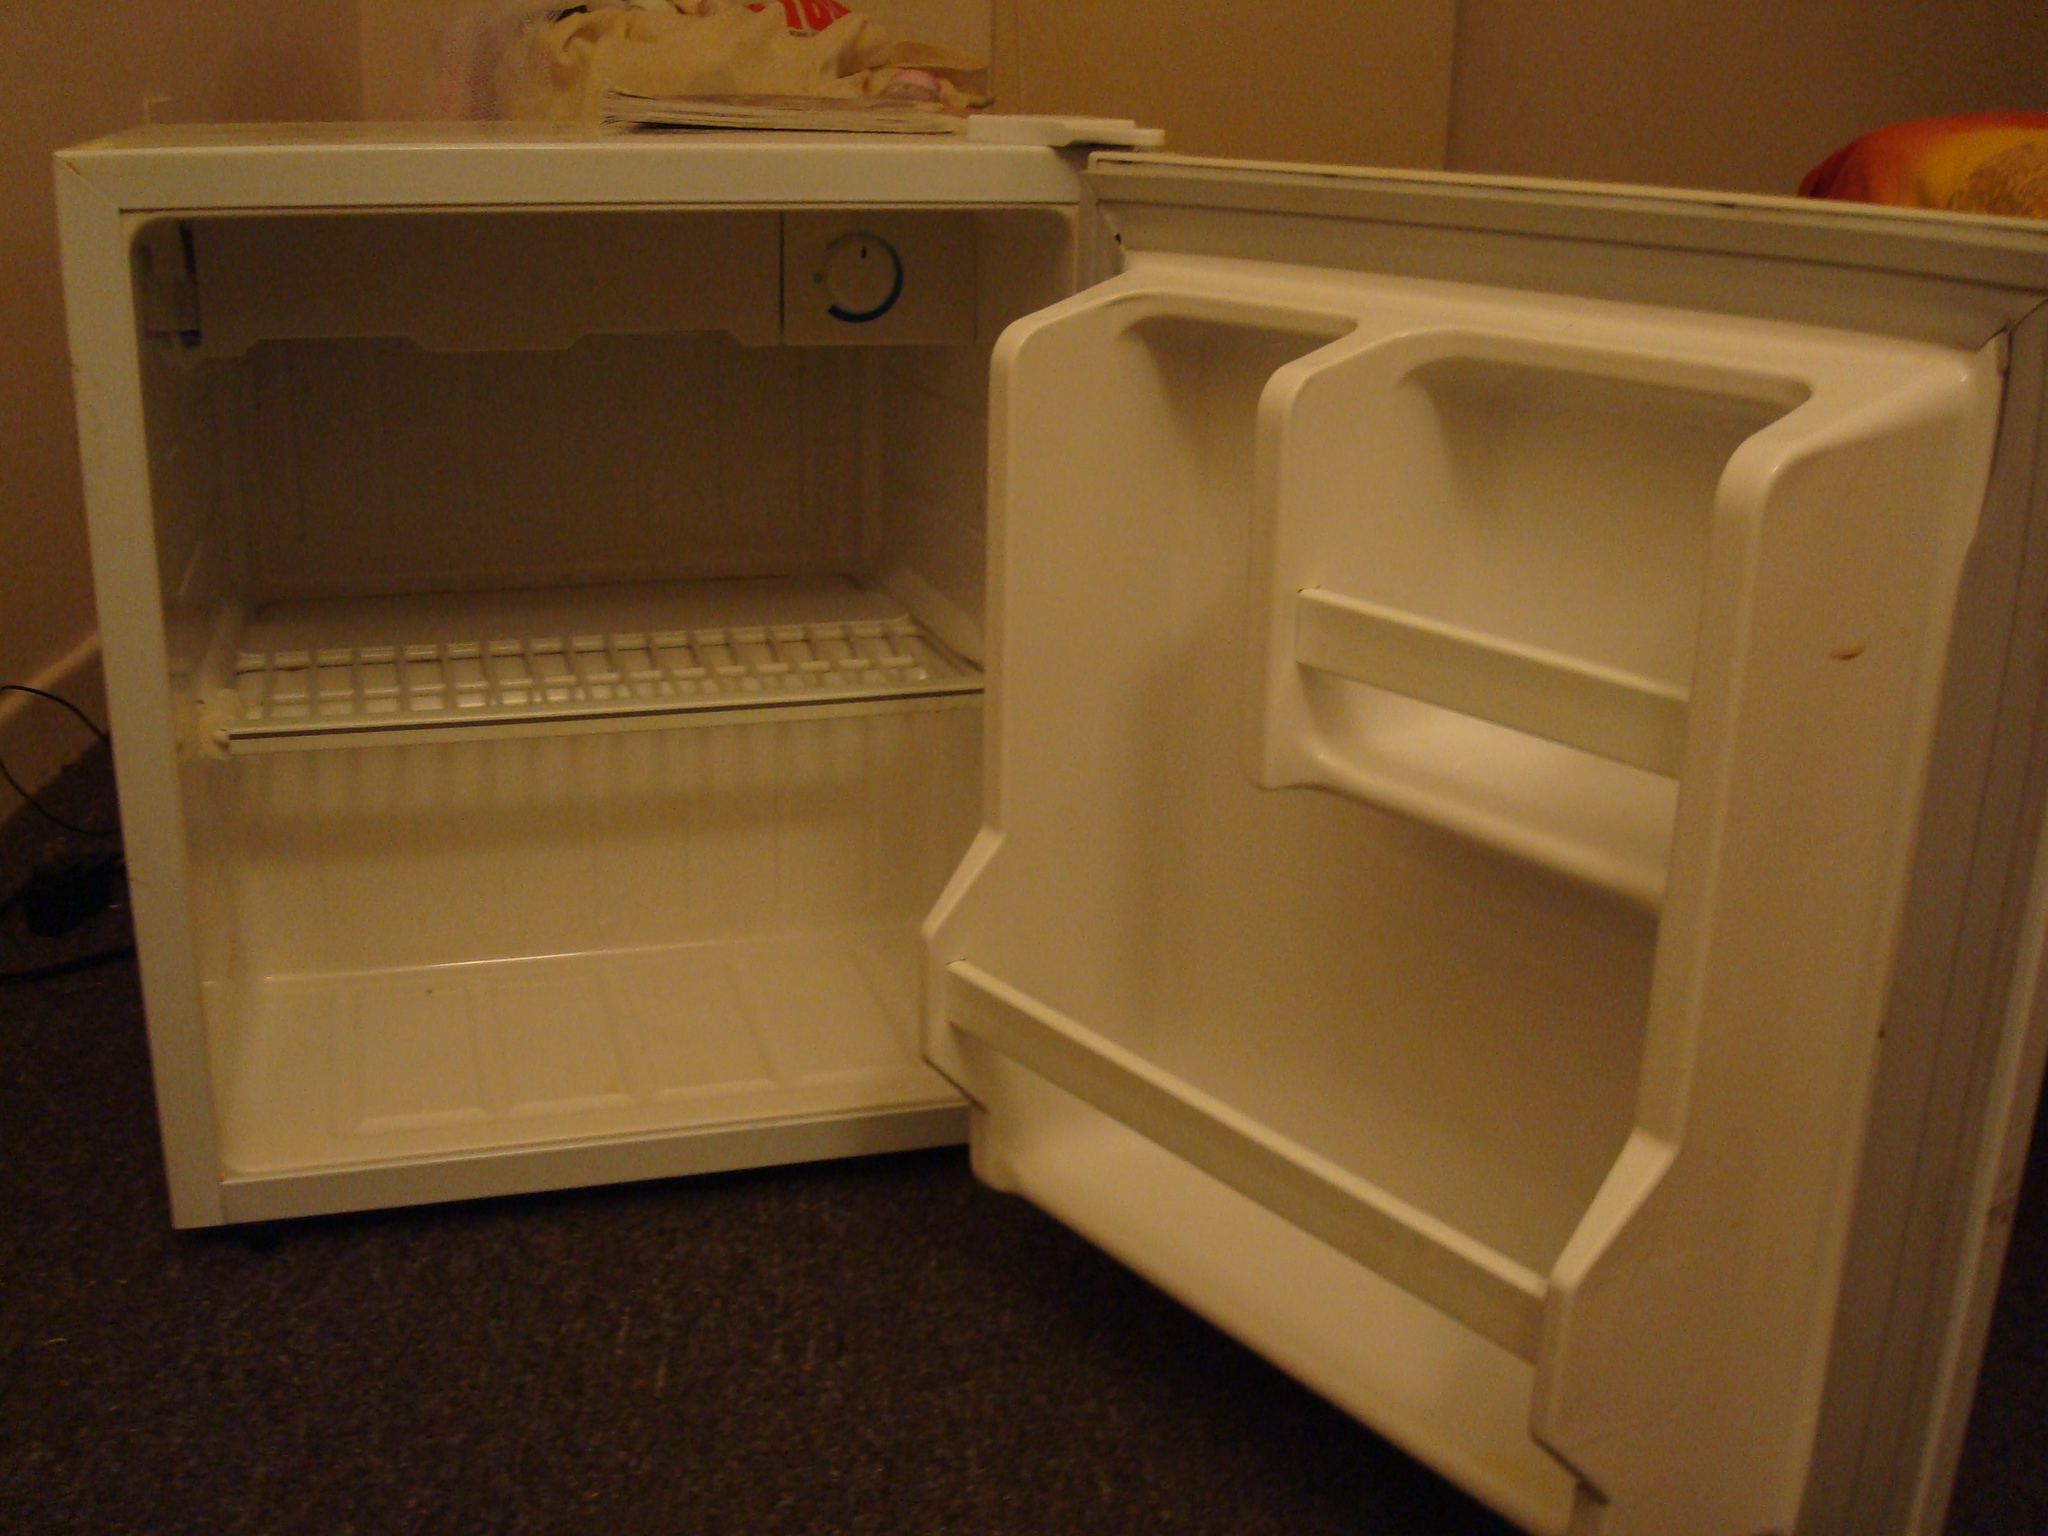 FOR SALE: fridge